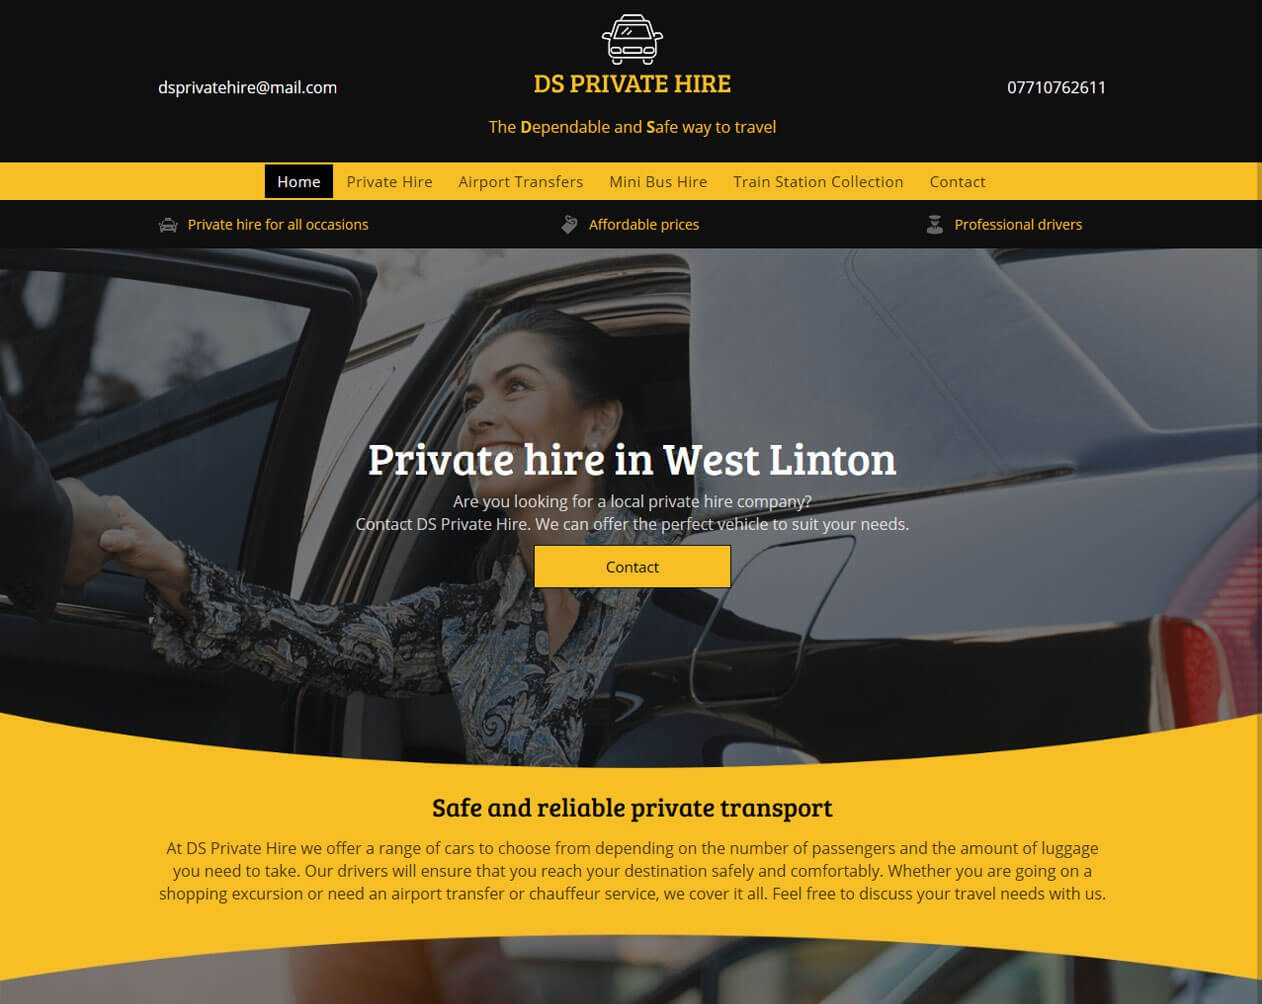 DS Private Hire premium website example from Yell